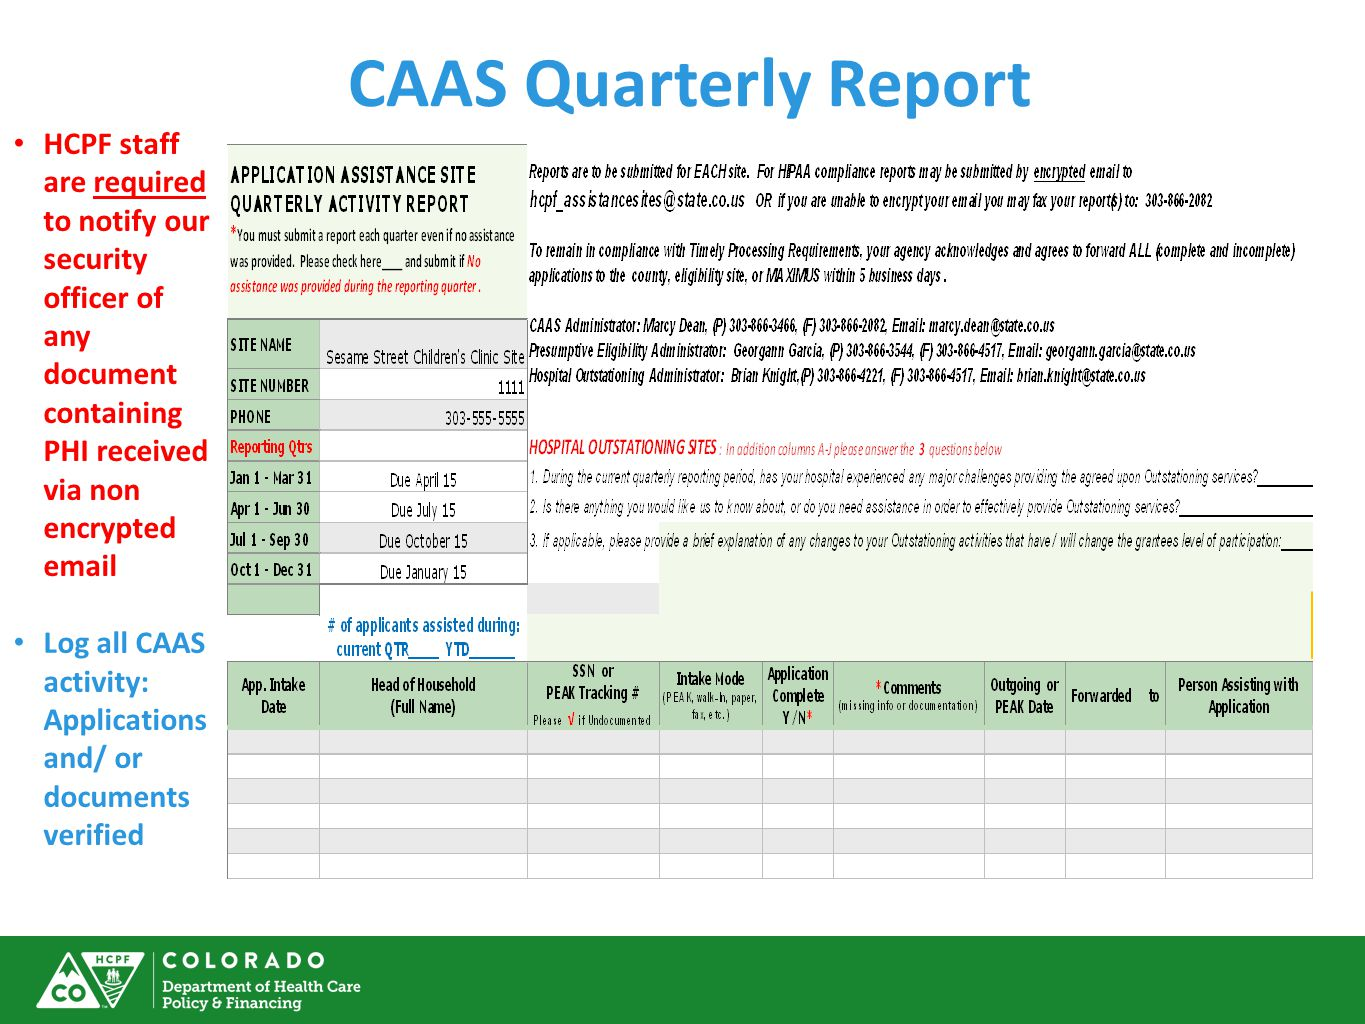 CAAS Quarterly Report HCPF staff are required to notify our security officer of any document containing PHI received via non encrypted email.